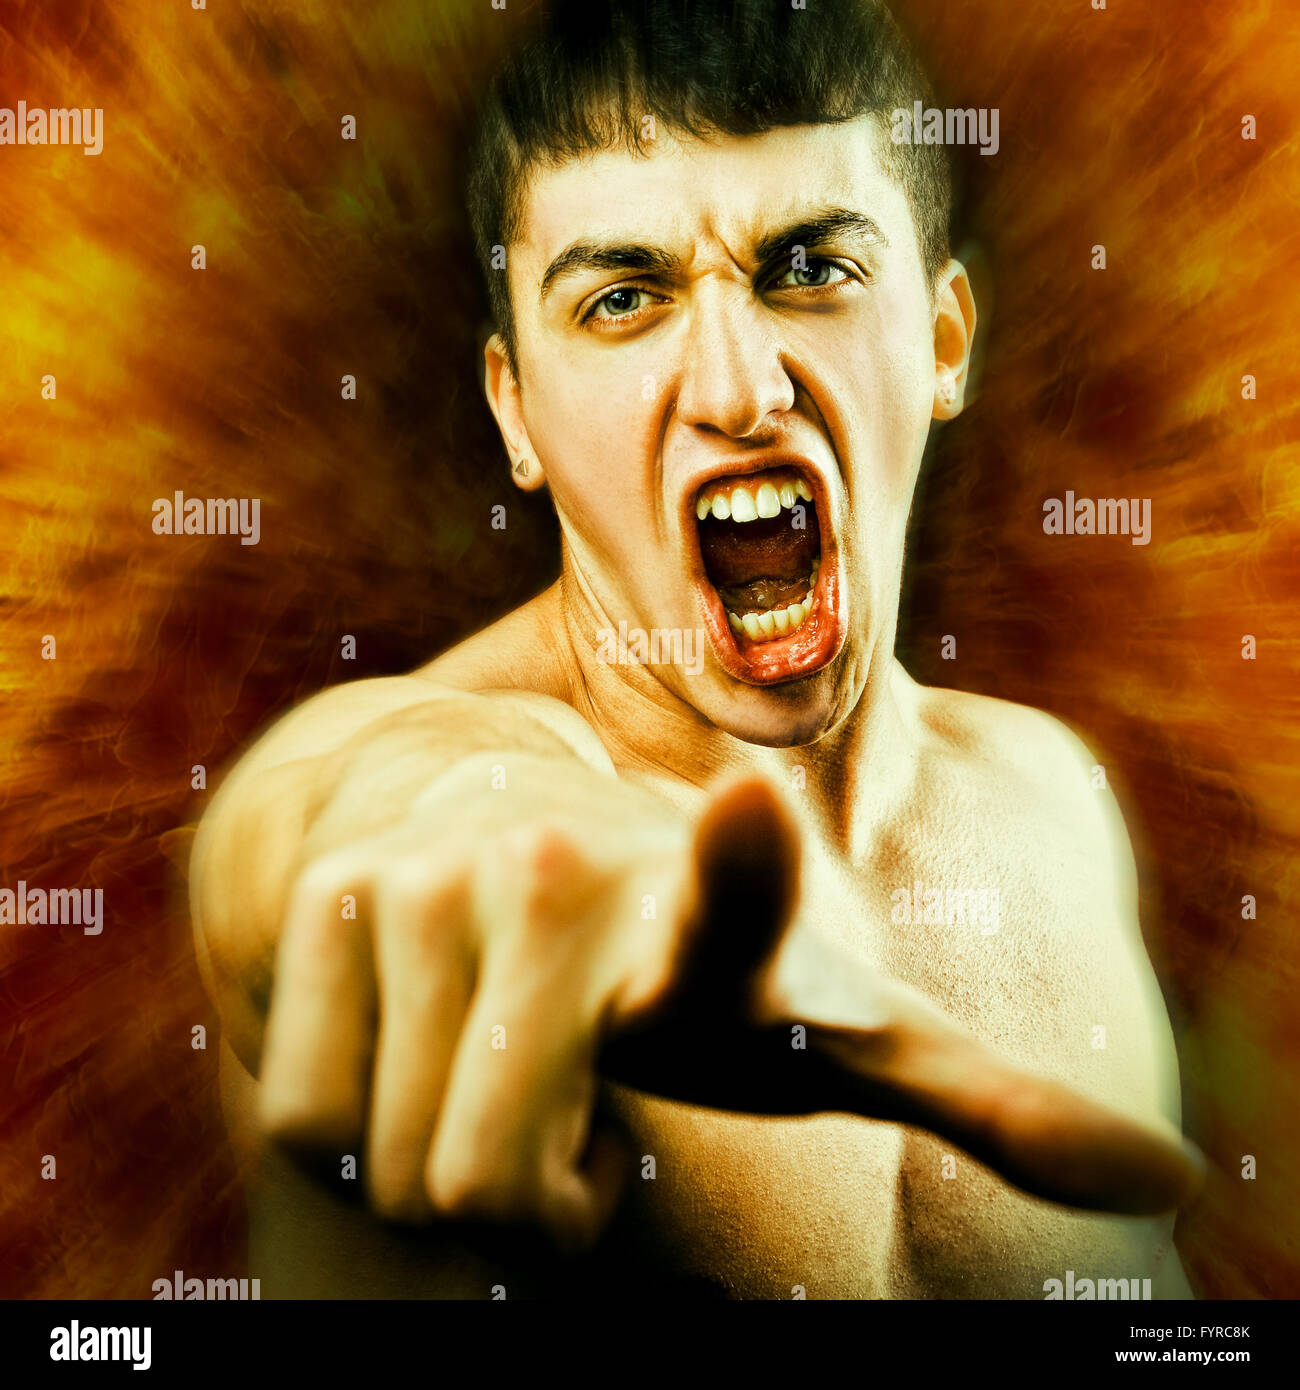 Angry Furious Man Screaming and Pointing Finger - Stock Image